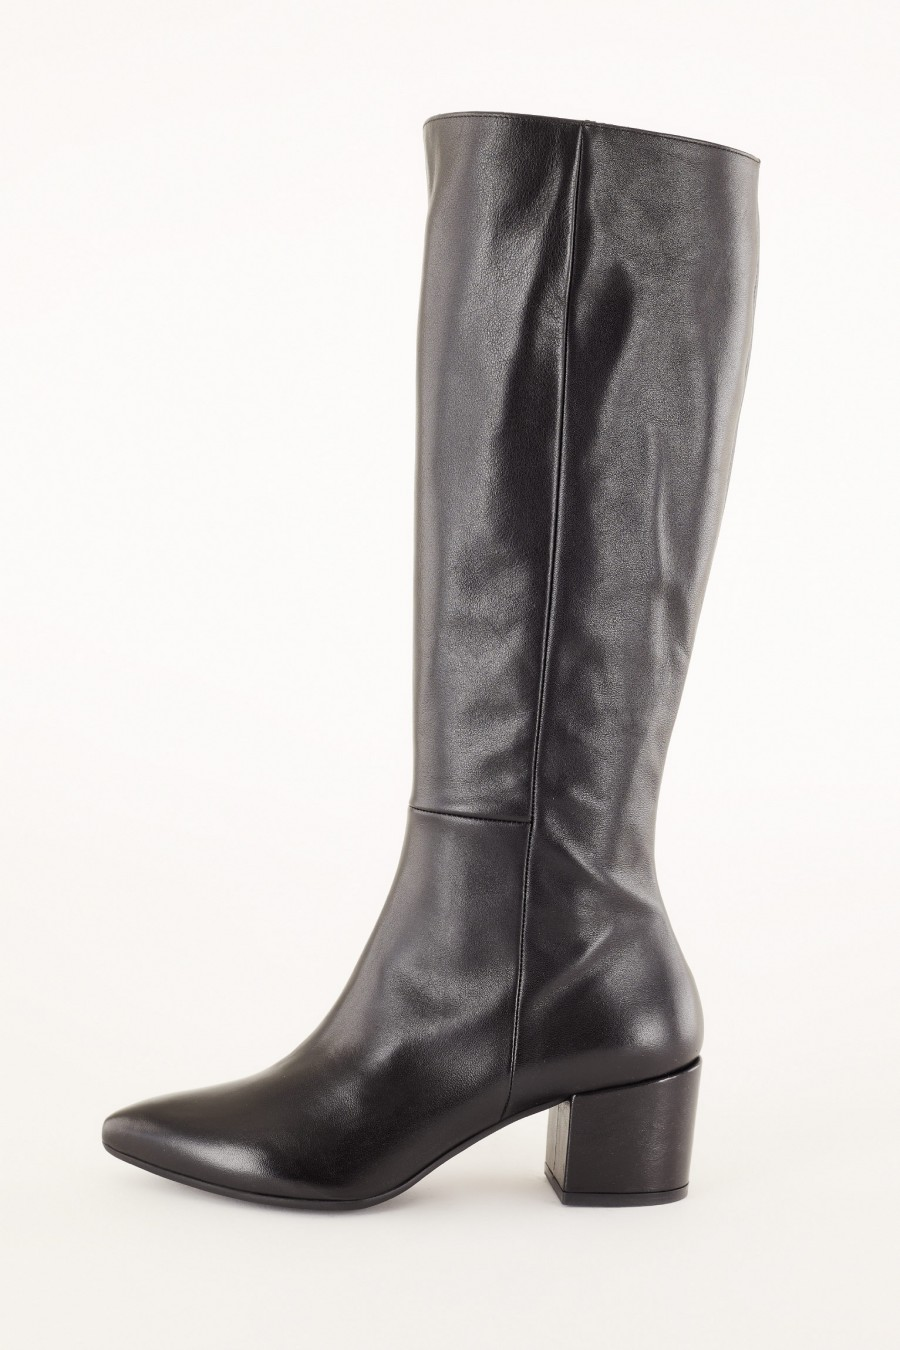 leather boots made in italy